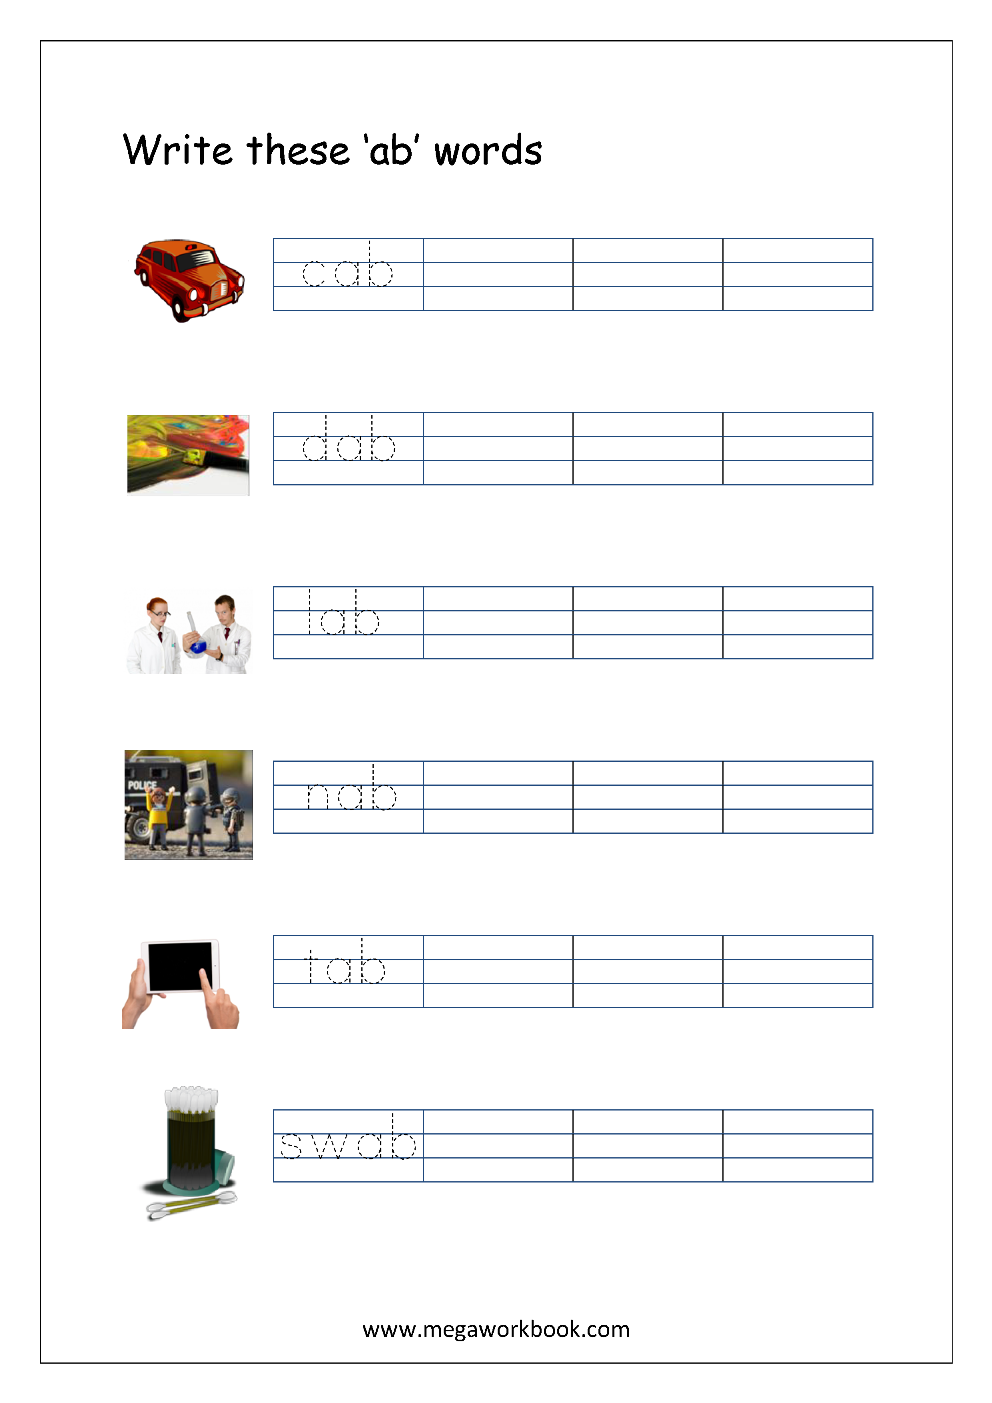 Free Printable CVC Words Writing Worksheets For Kids - Three Letter